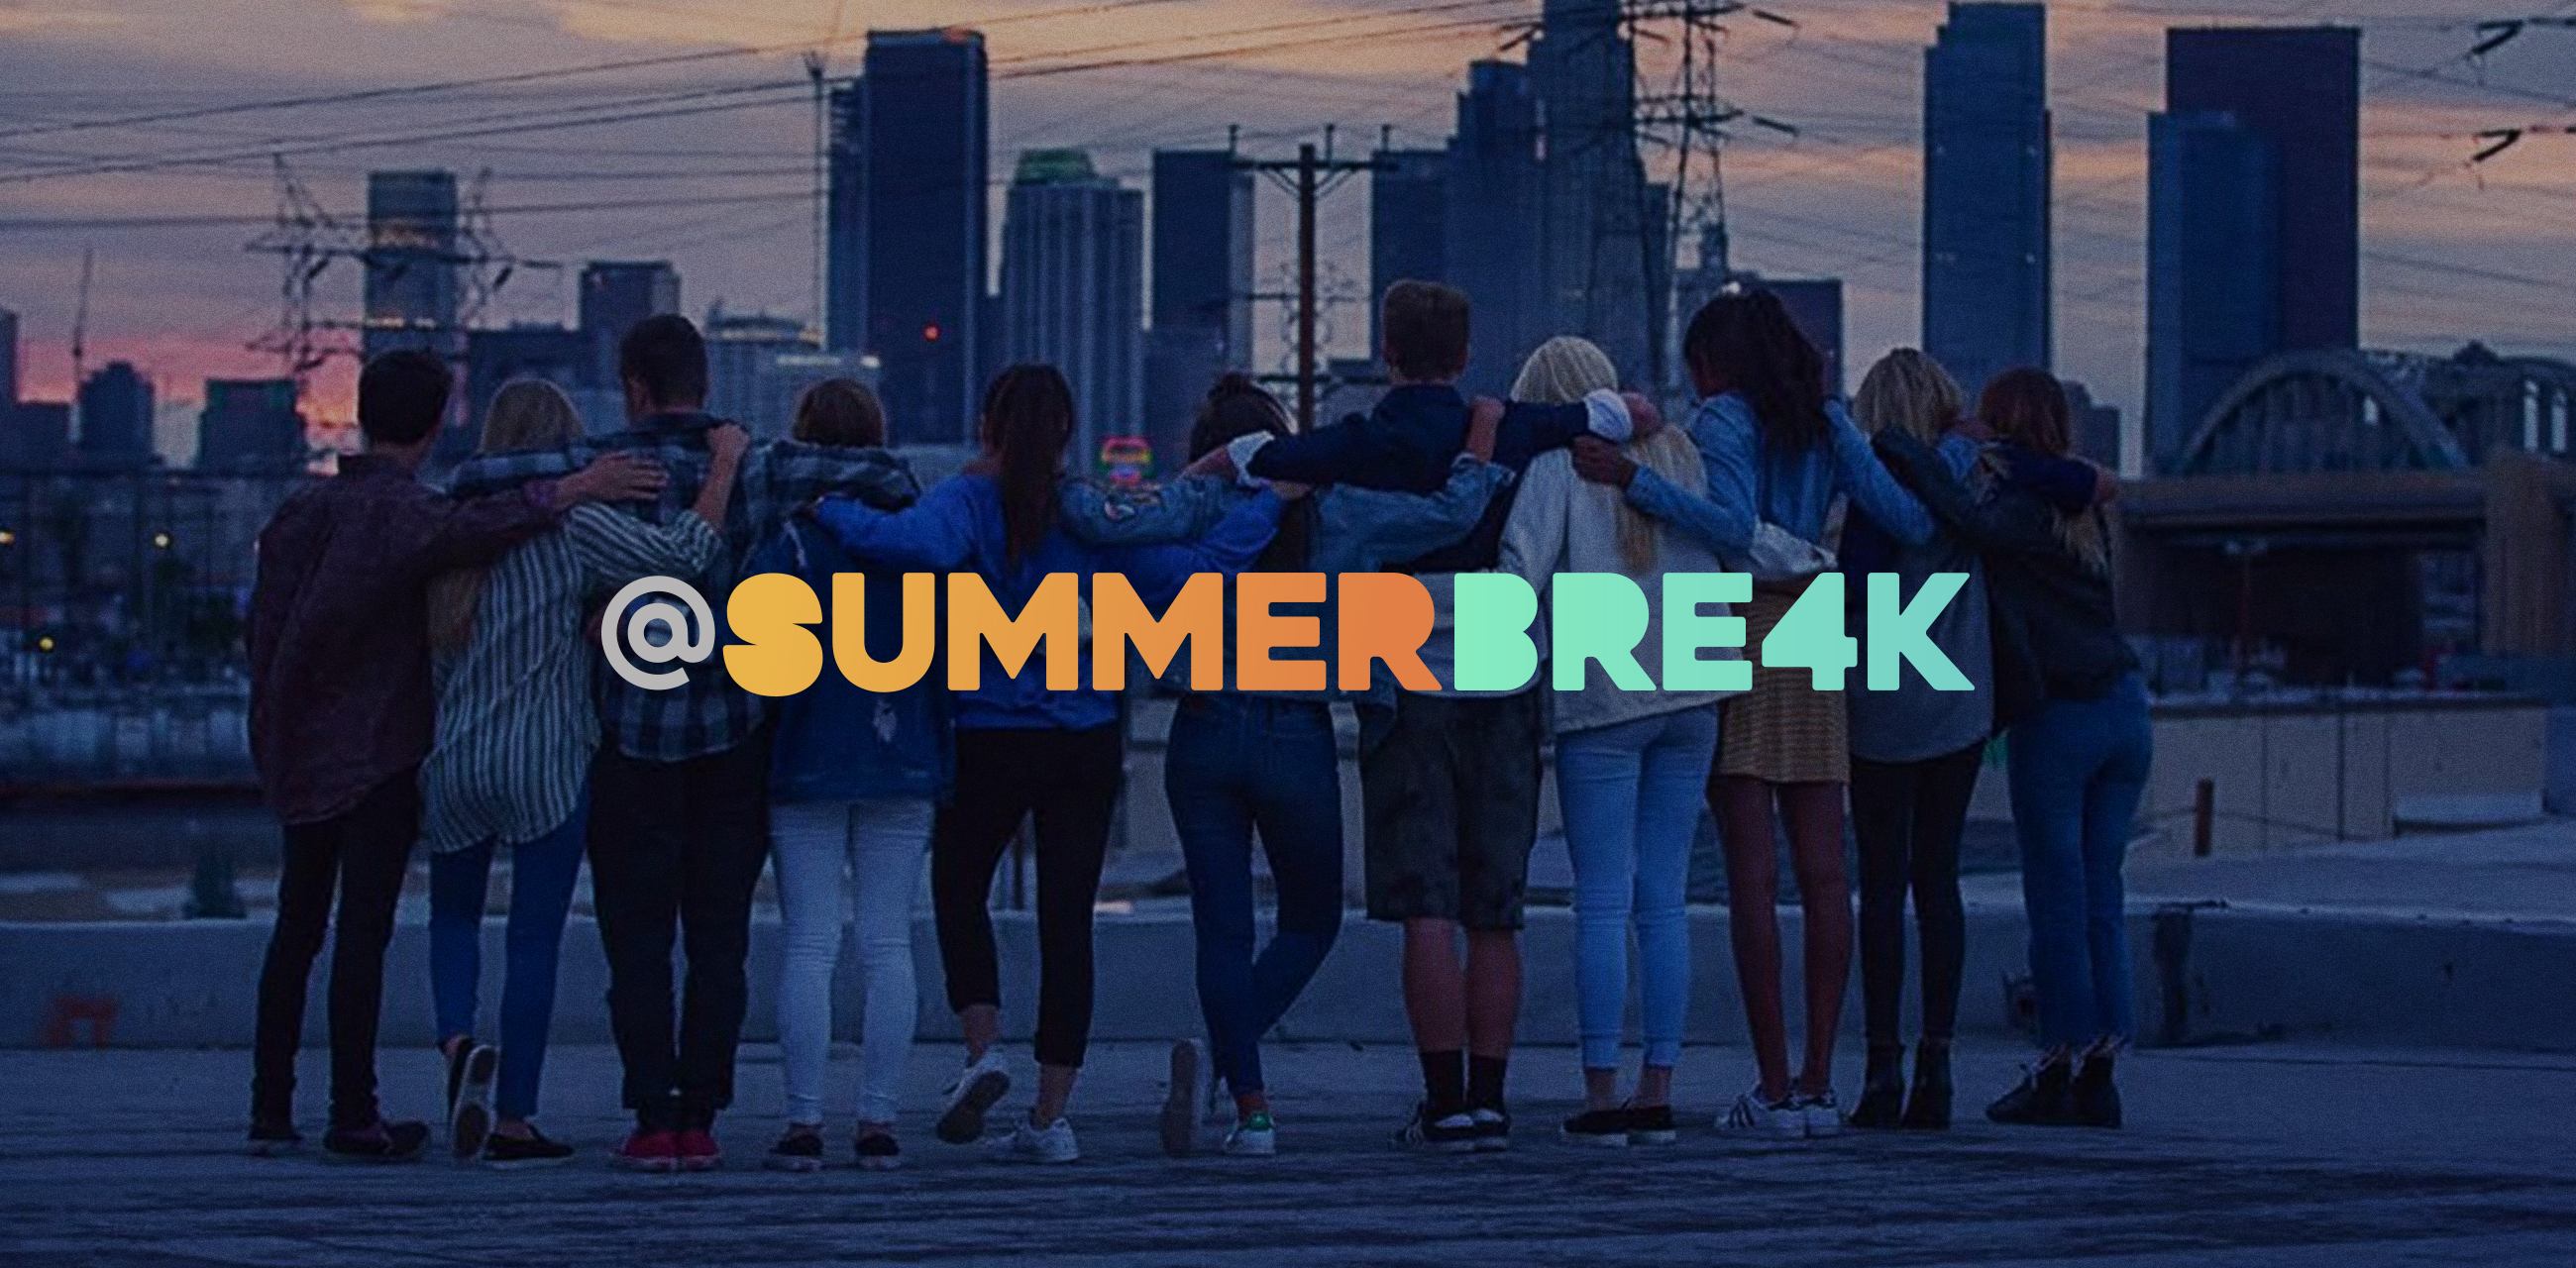 AT&T Summer Break Season 4